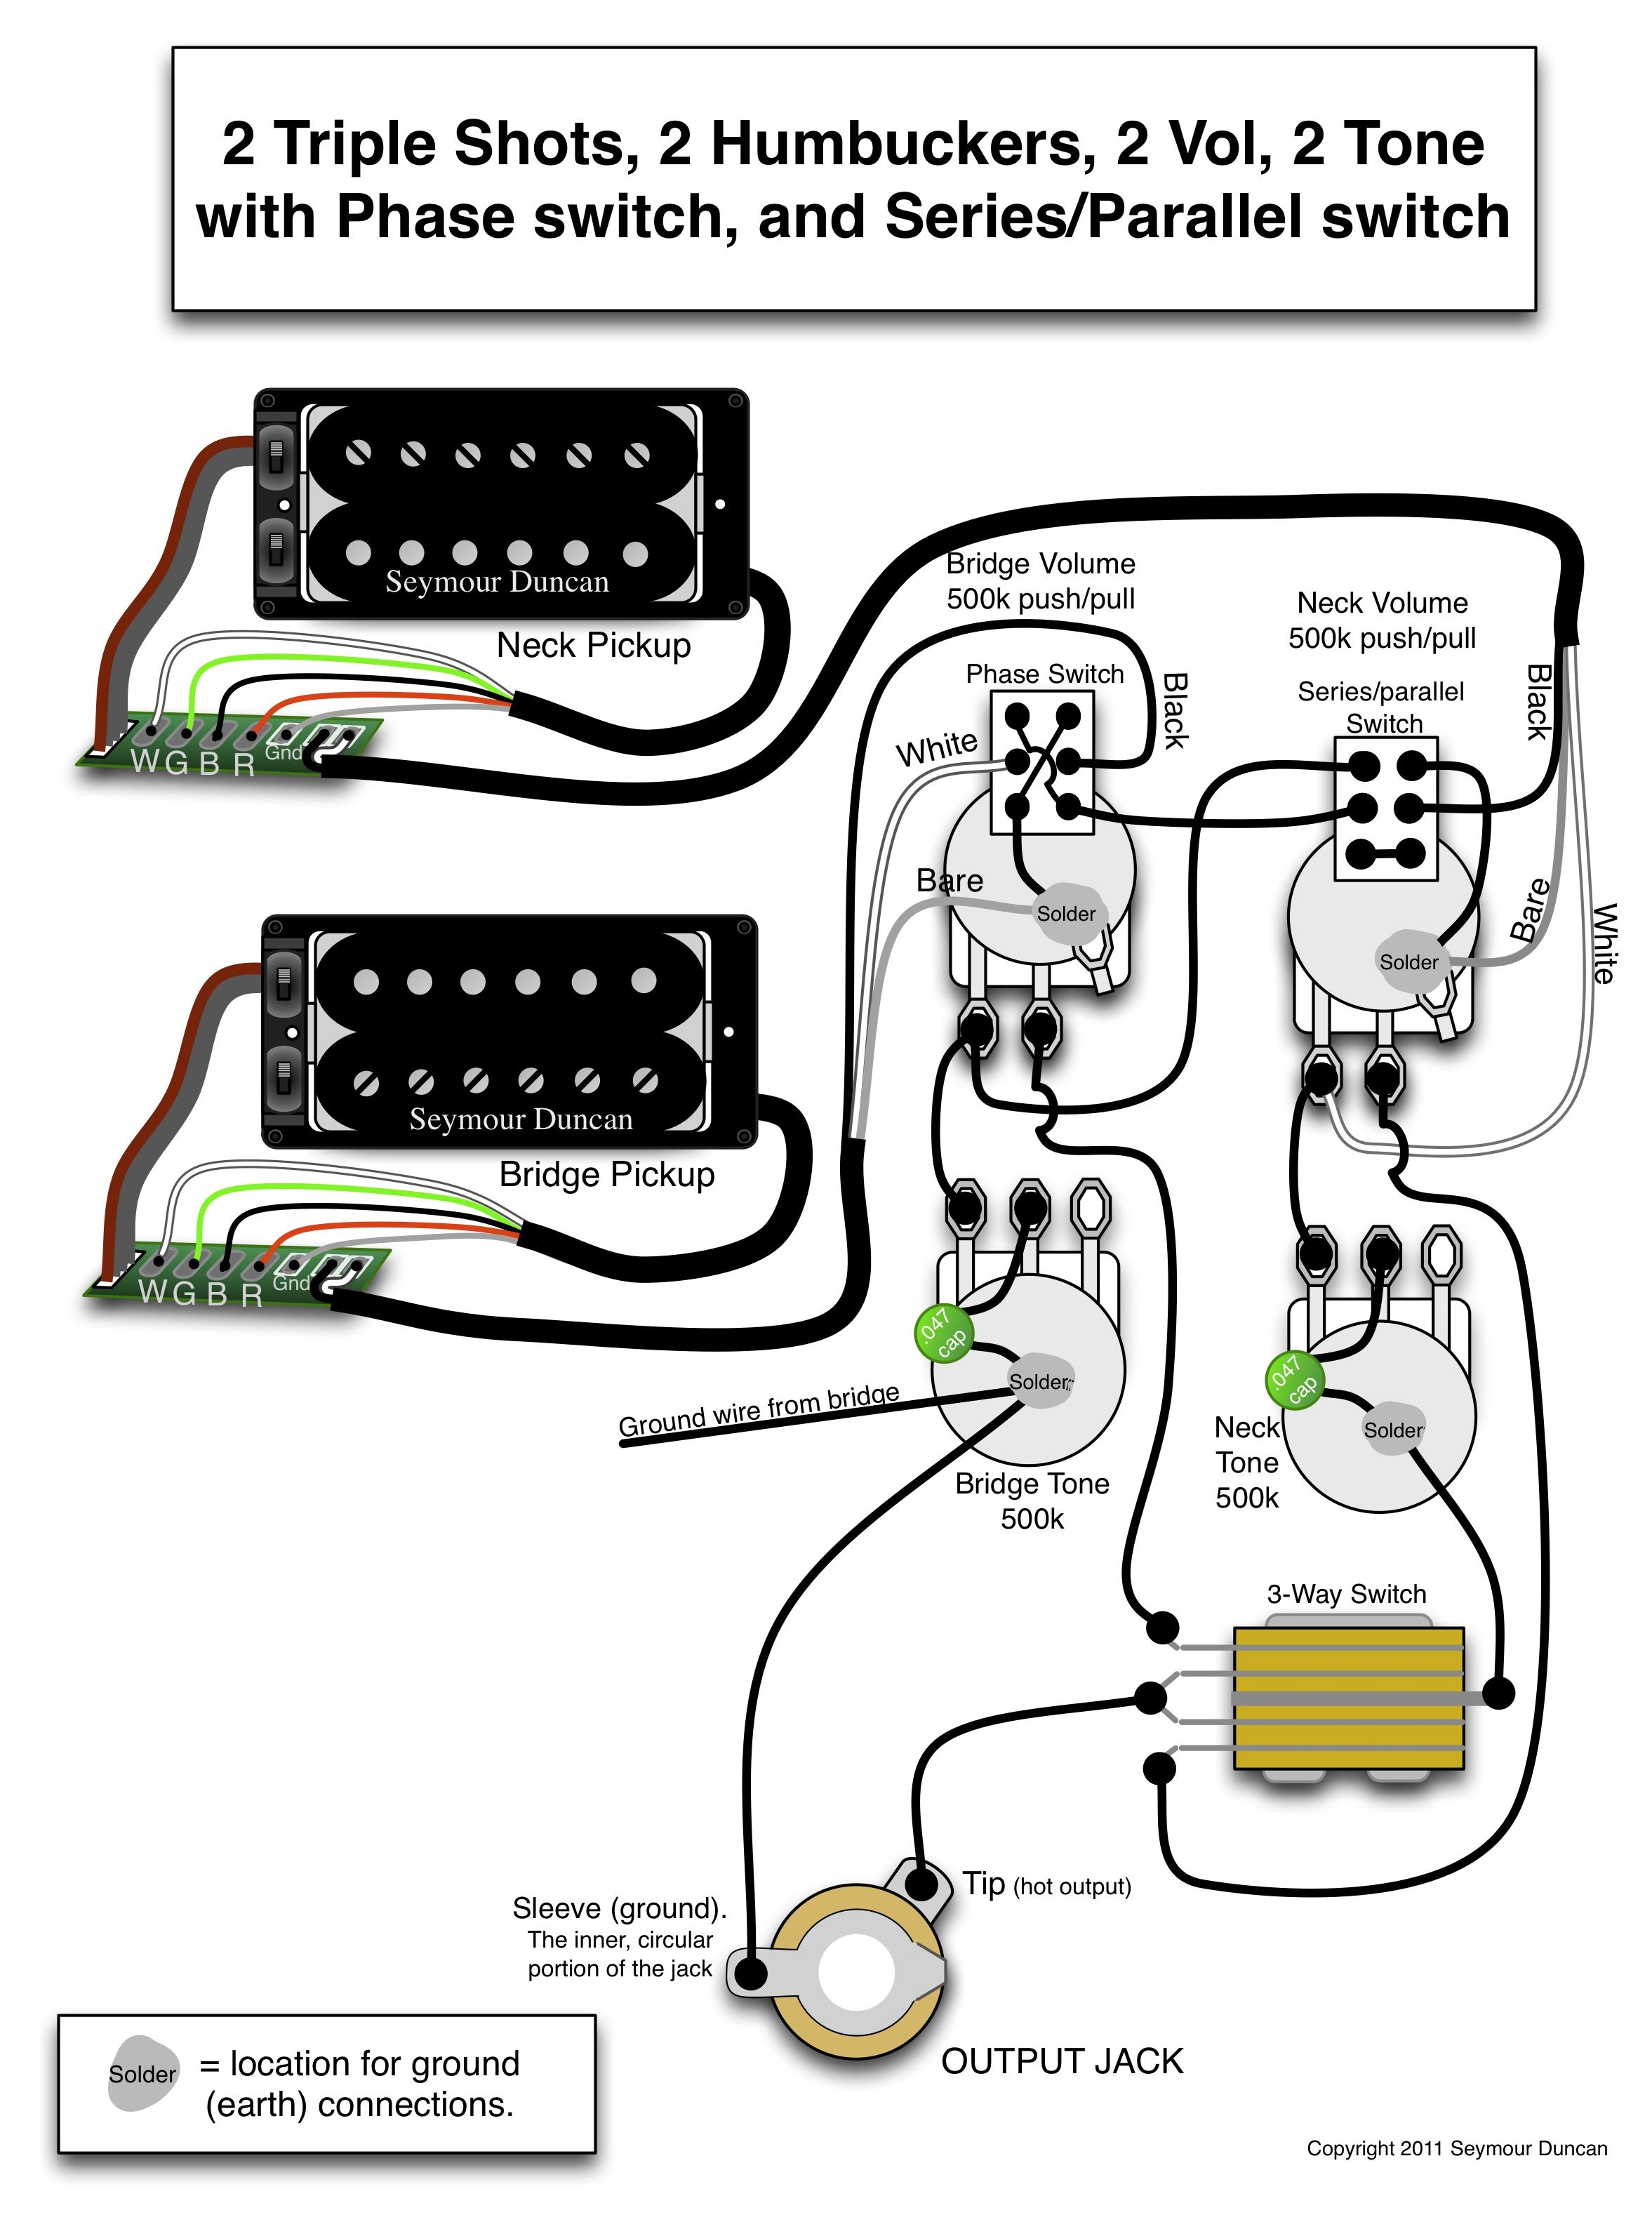 guitar wiring diagram 2 pickup 1 volume tone ethernet cable wire seymour duncan triple shots